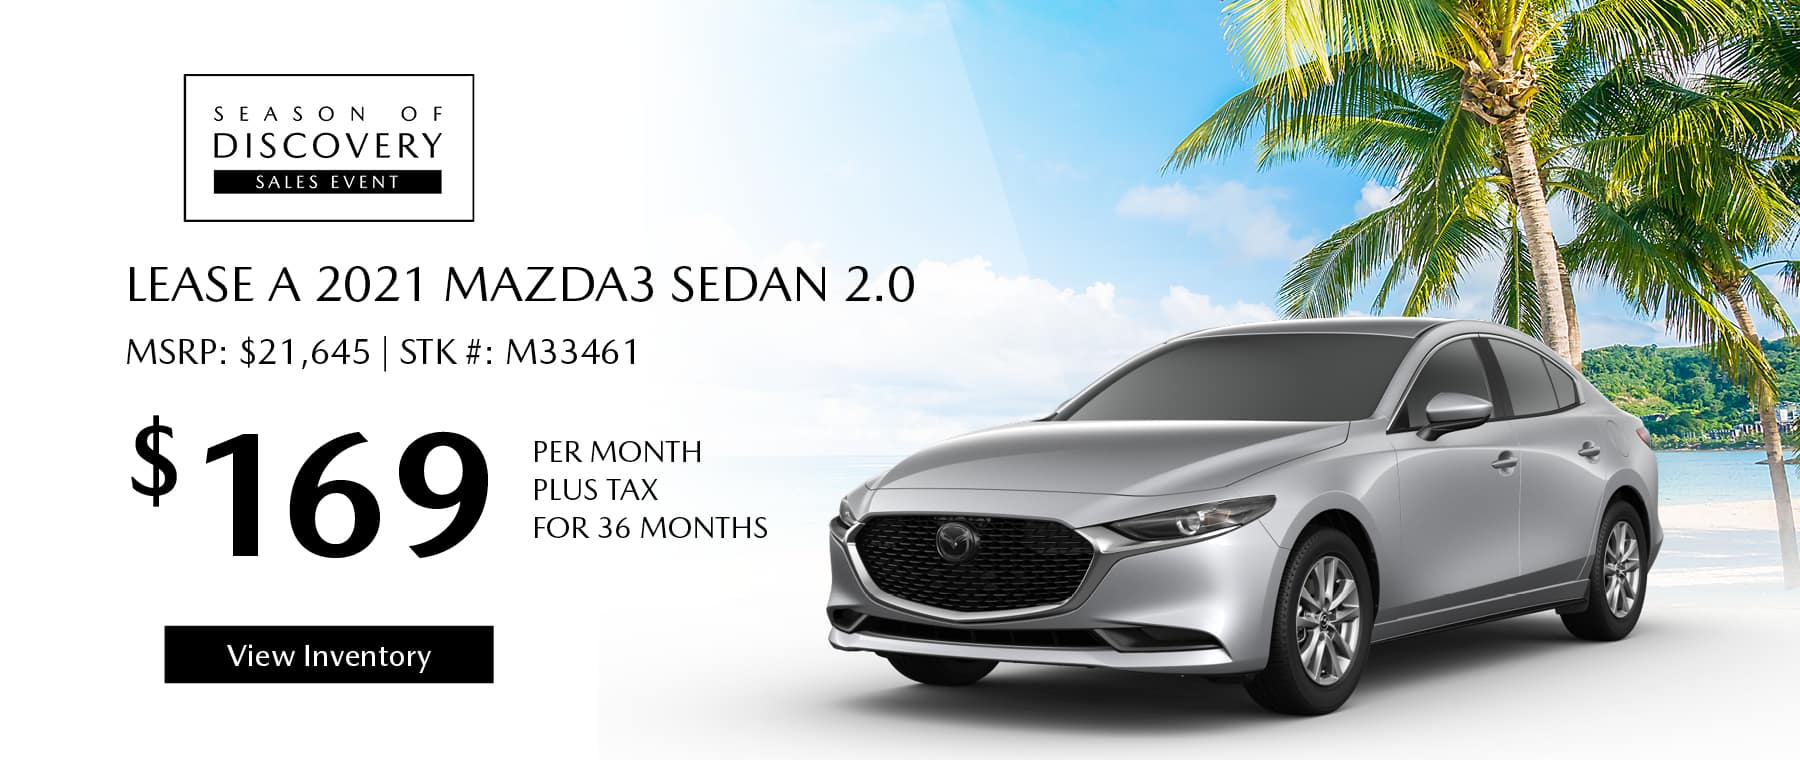 Lease the 2021 Mazda3 Sedan 2.0 for $169 per month, plus tax for 36 months. Click or tap here to view our inventory.